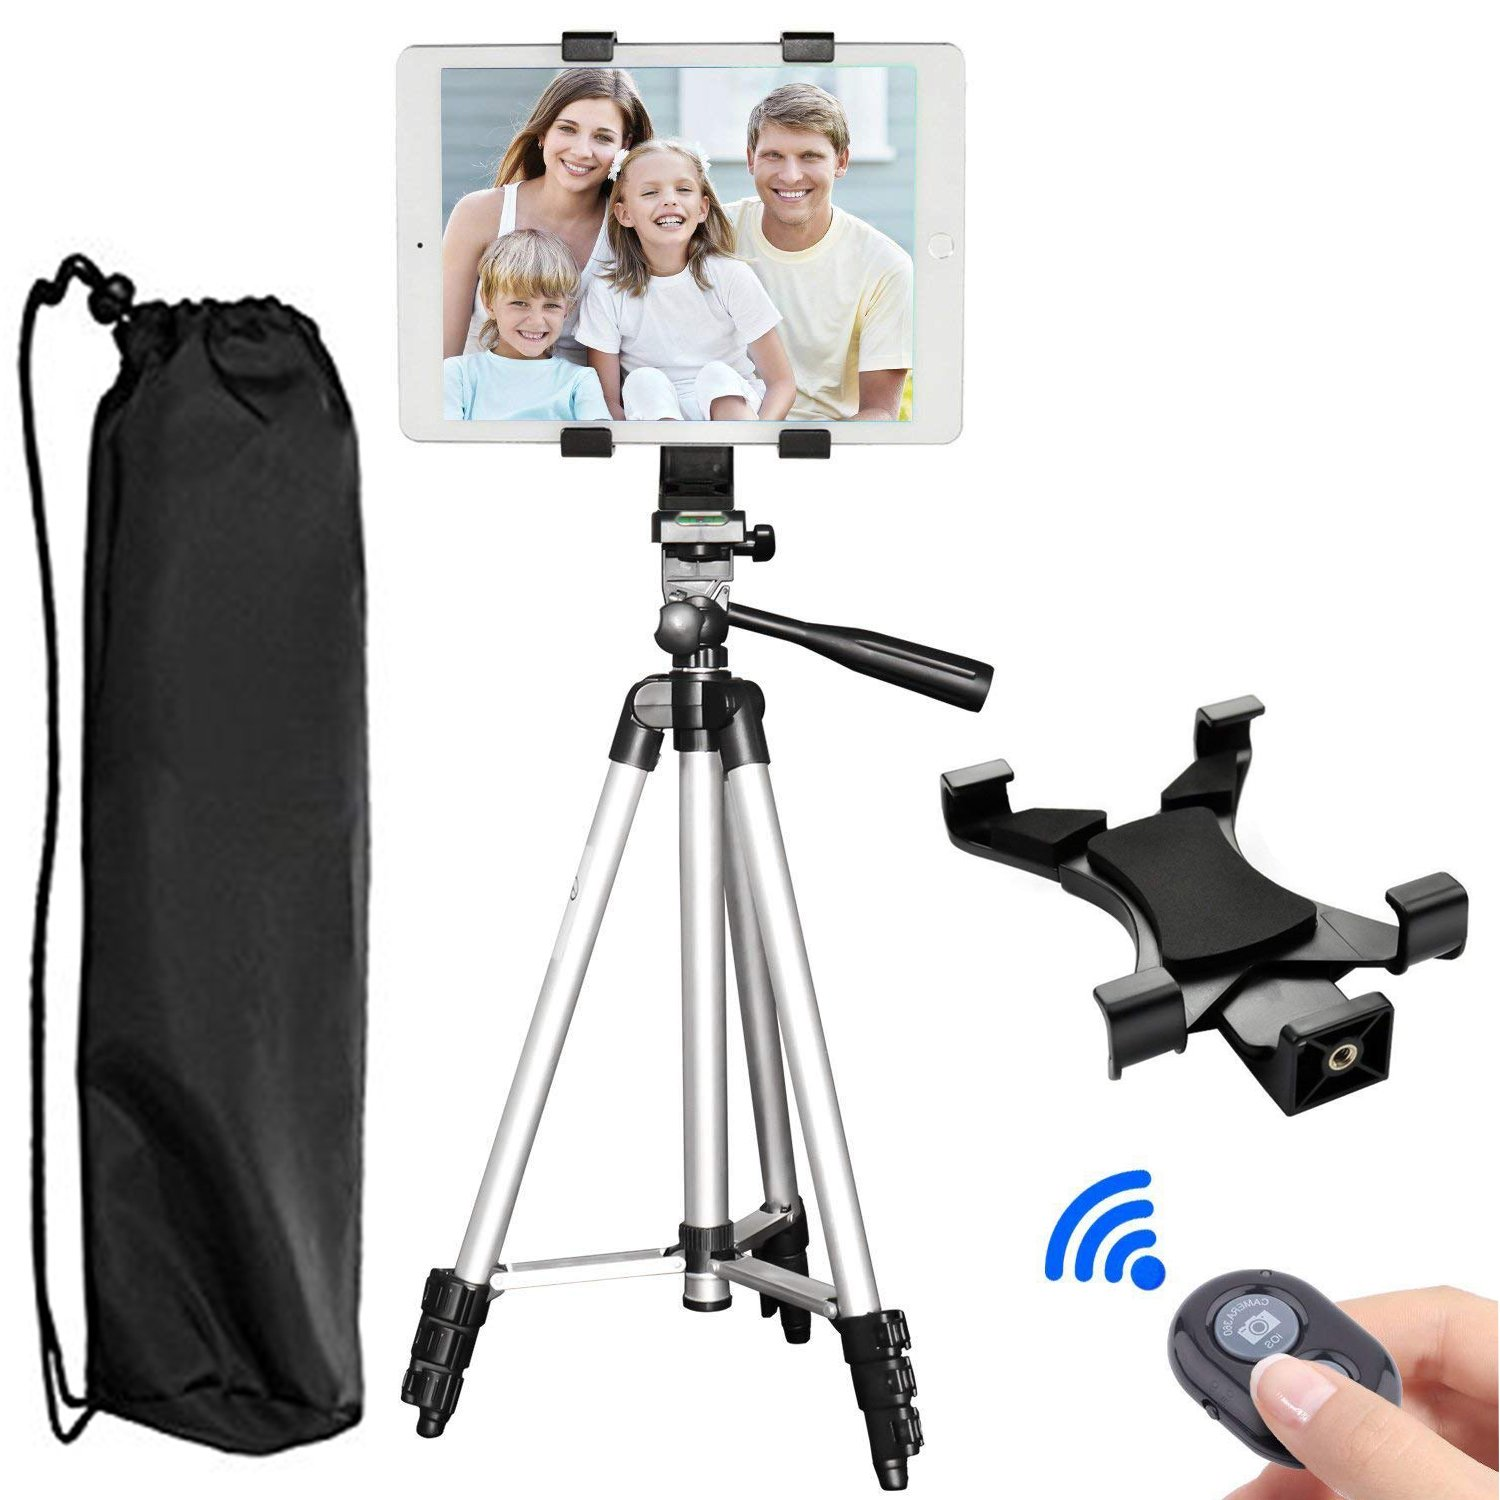 Tablet Tripod, PEYOU 42'' inch Portable Lightweight Adjustable Aluminum Camera Tablet Tripod + Universal Mount Tablet Holder + Bluetooth Wireless Remote Shutter Compatible for iPad Samsung Kindle Fire